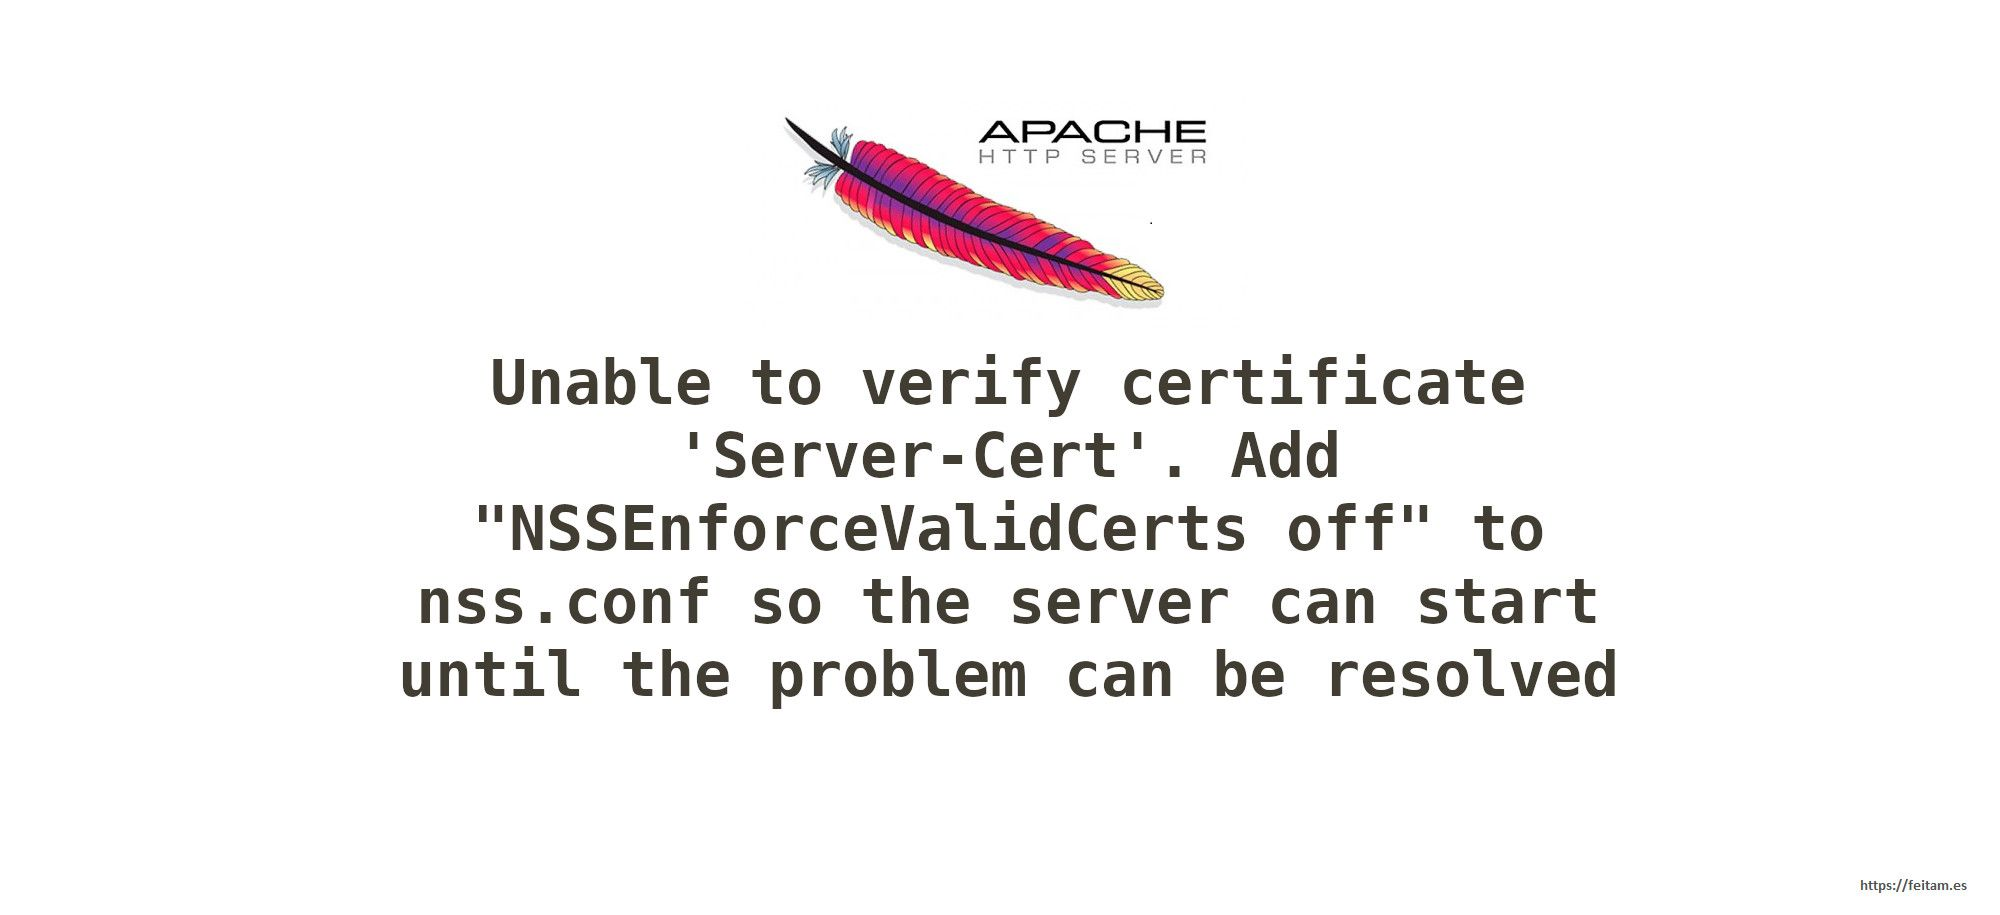 "Unable to verify certificate 'Server-Cert'. Add ""NSSEnforceValidCerts off"" to nss.conf so the server can start until the problem can be resolved"